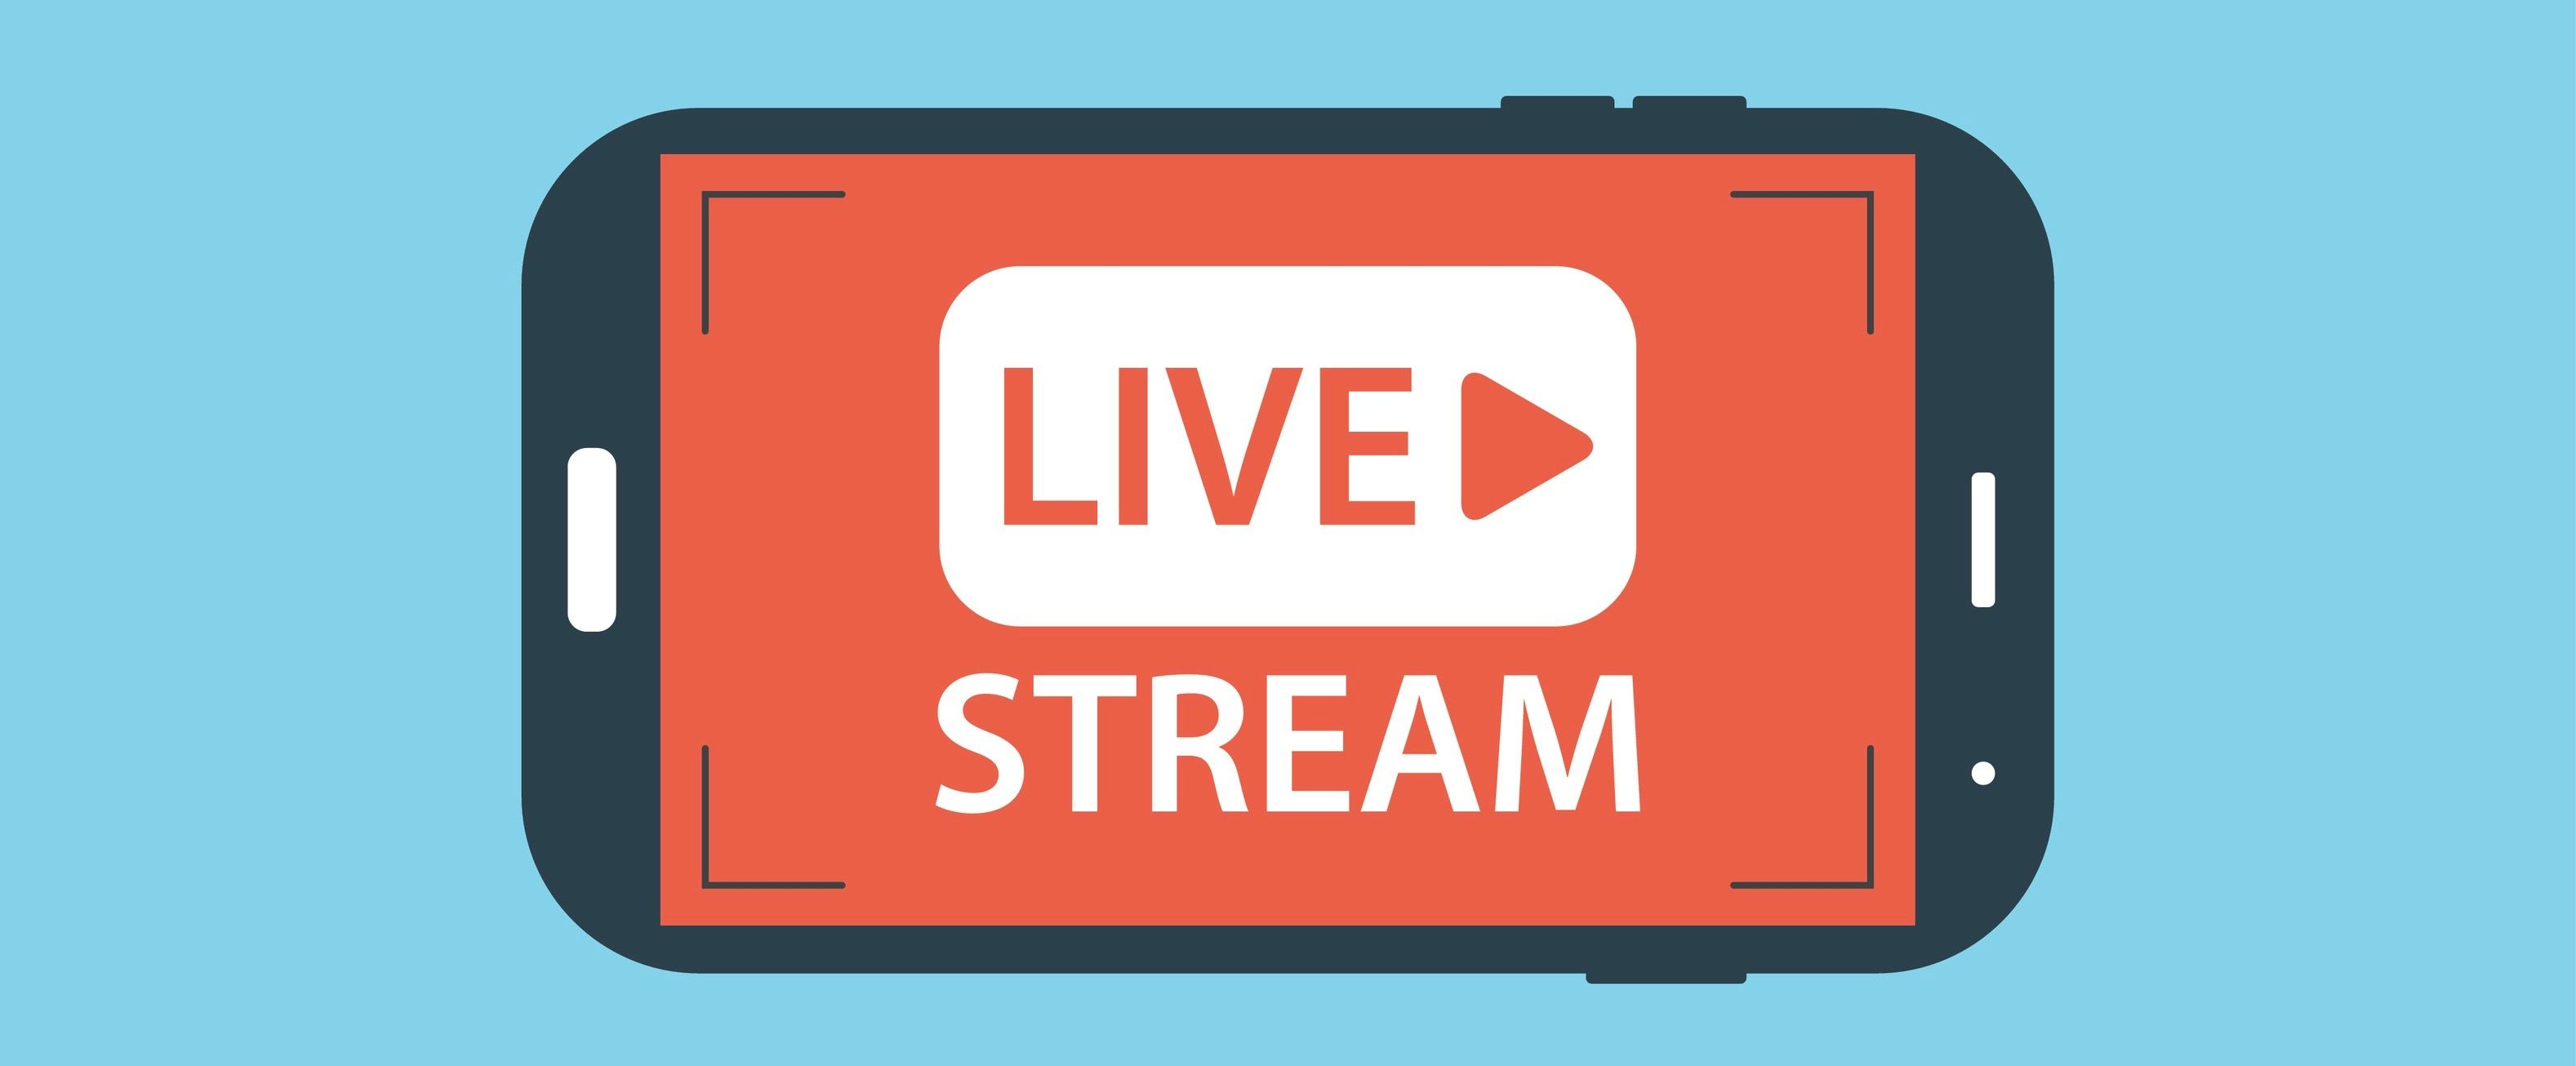 https://blog.hubspot.com/marketing/best-live-video-platform